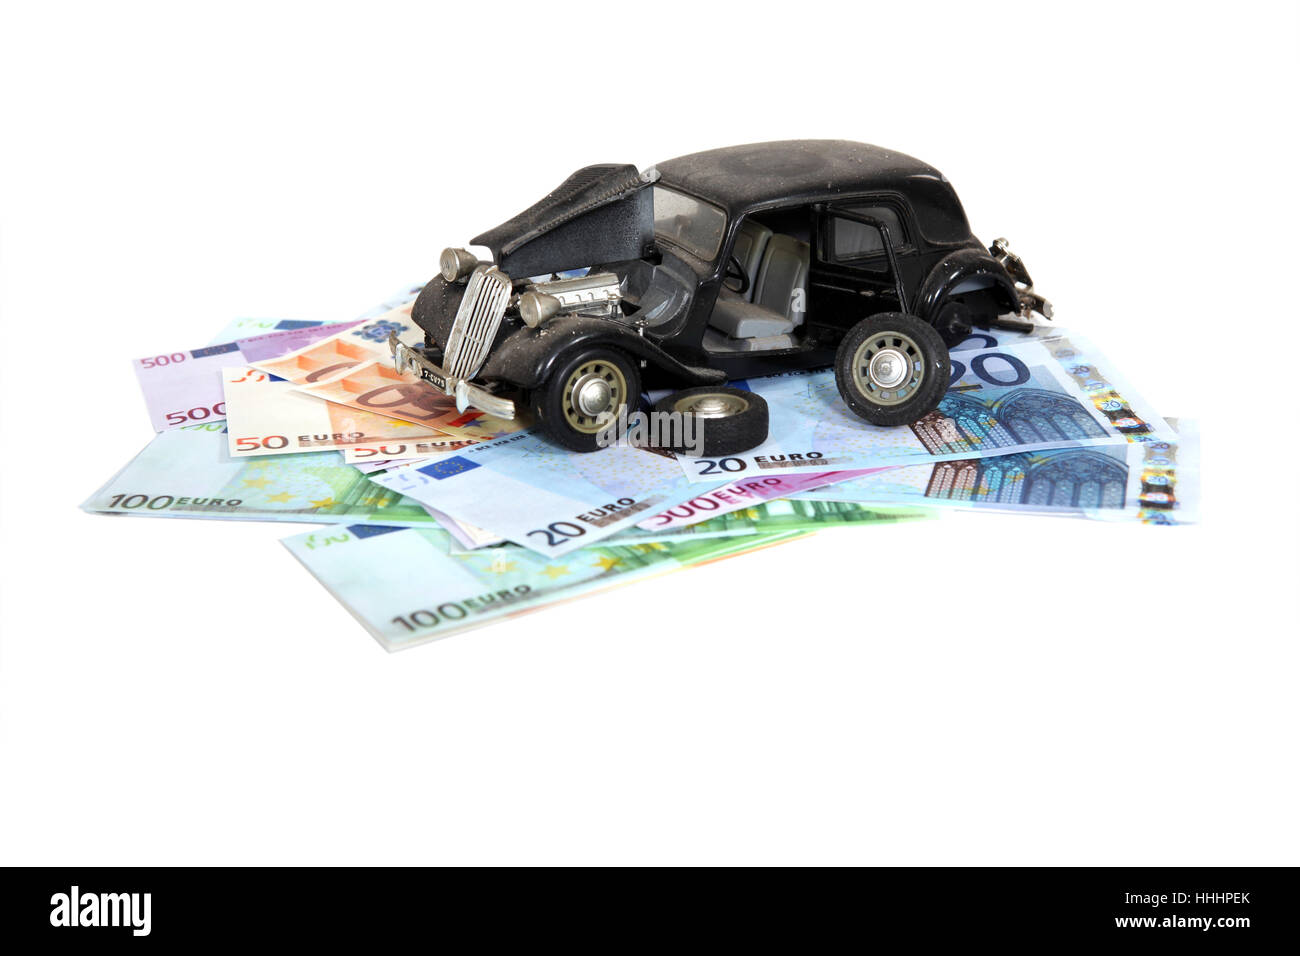 antique, car, automobile, vehicle, means of travel, motor vehicle, accident, - Stock Image